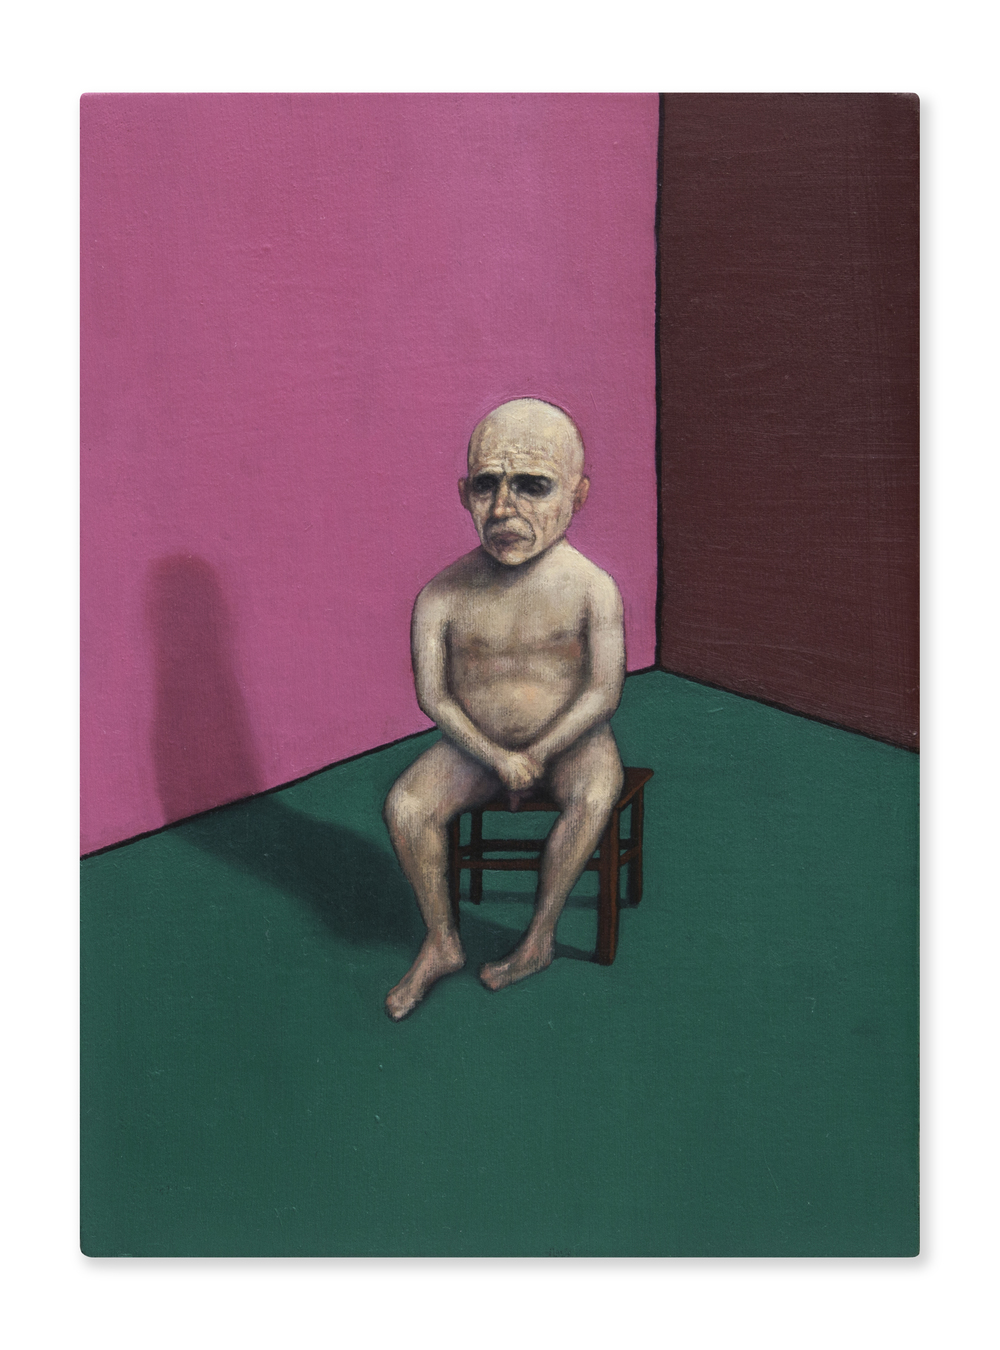 Chaneque melancólico,  2015, Oil on canvas, 30 x 22 cm